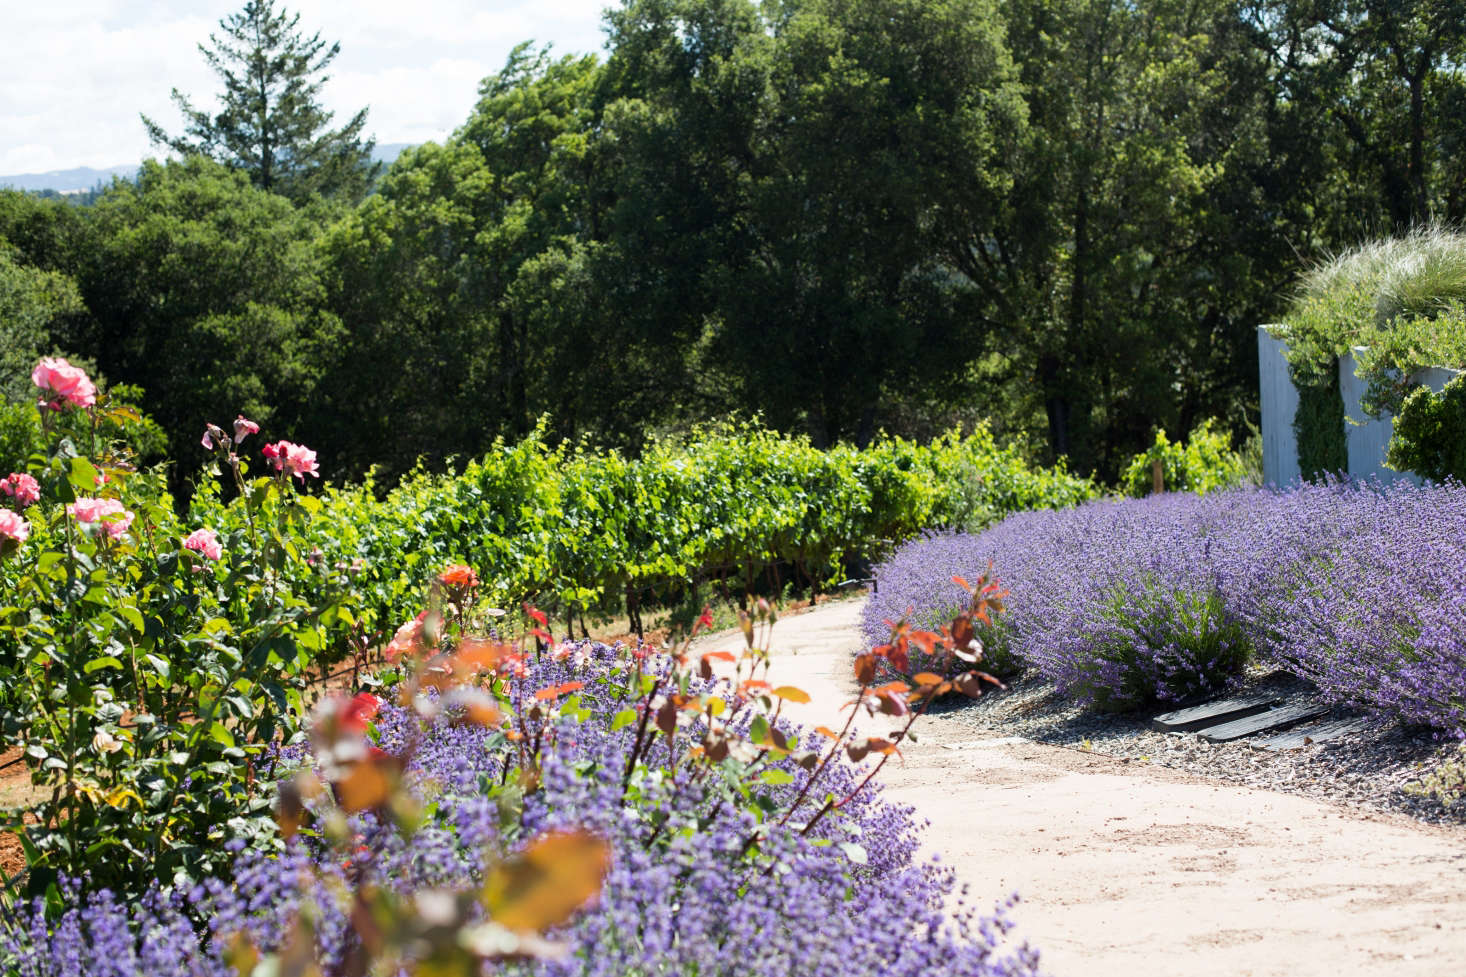 Lavender borders a path of decomposed granite. Photograph by Mimi Giboin. For more, see Landscape Architect Visit: Vineyard Views in Healdsburg&#8